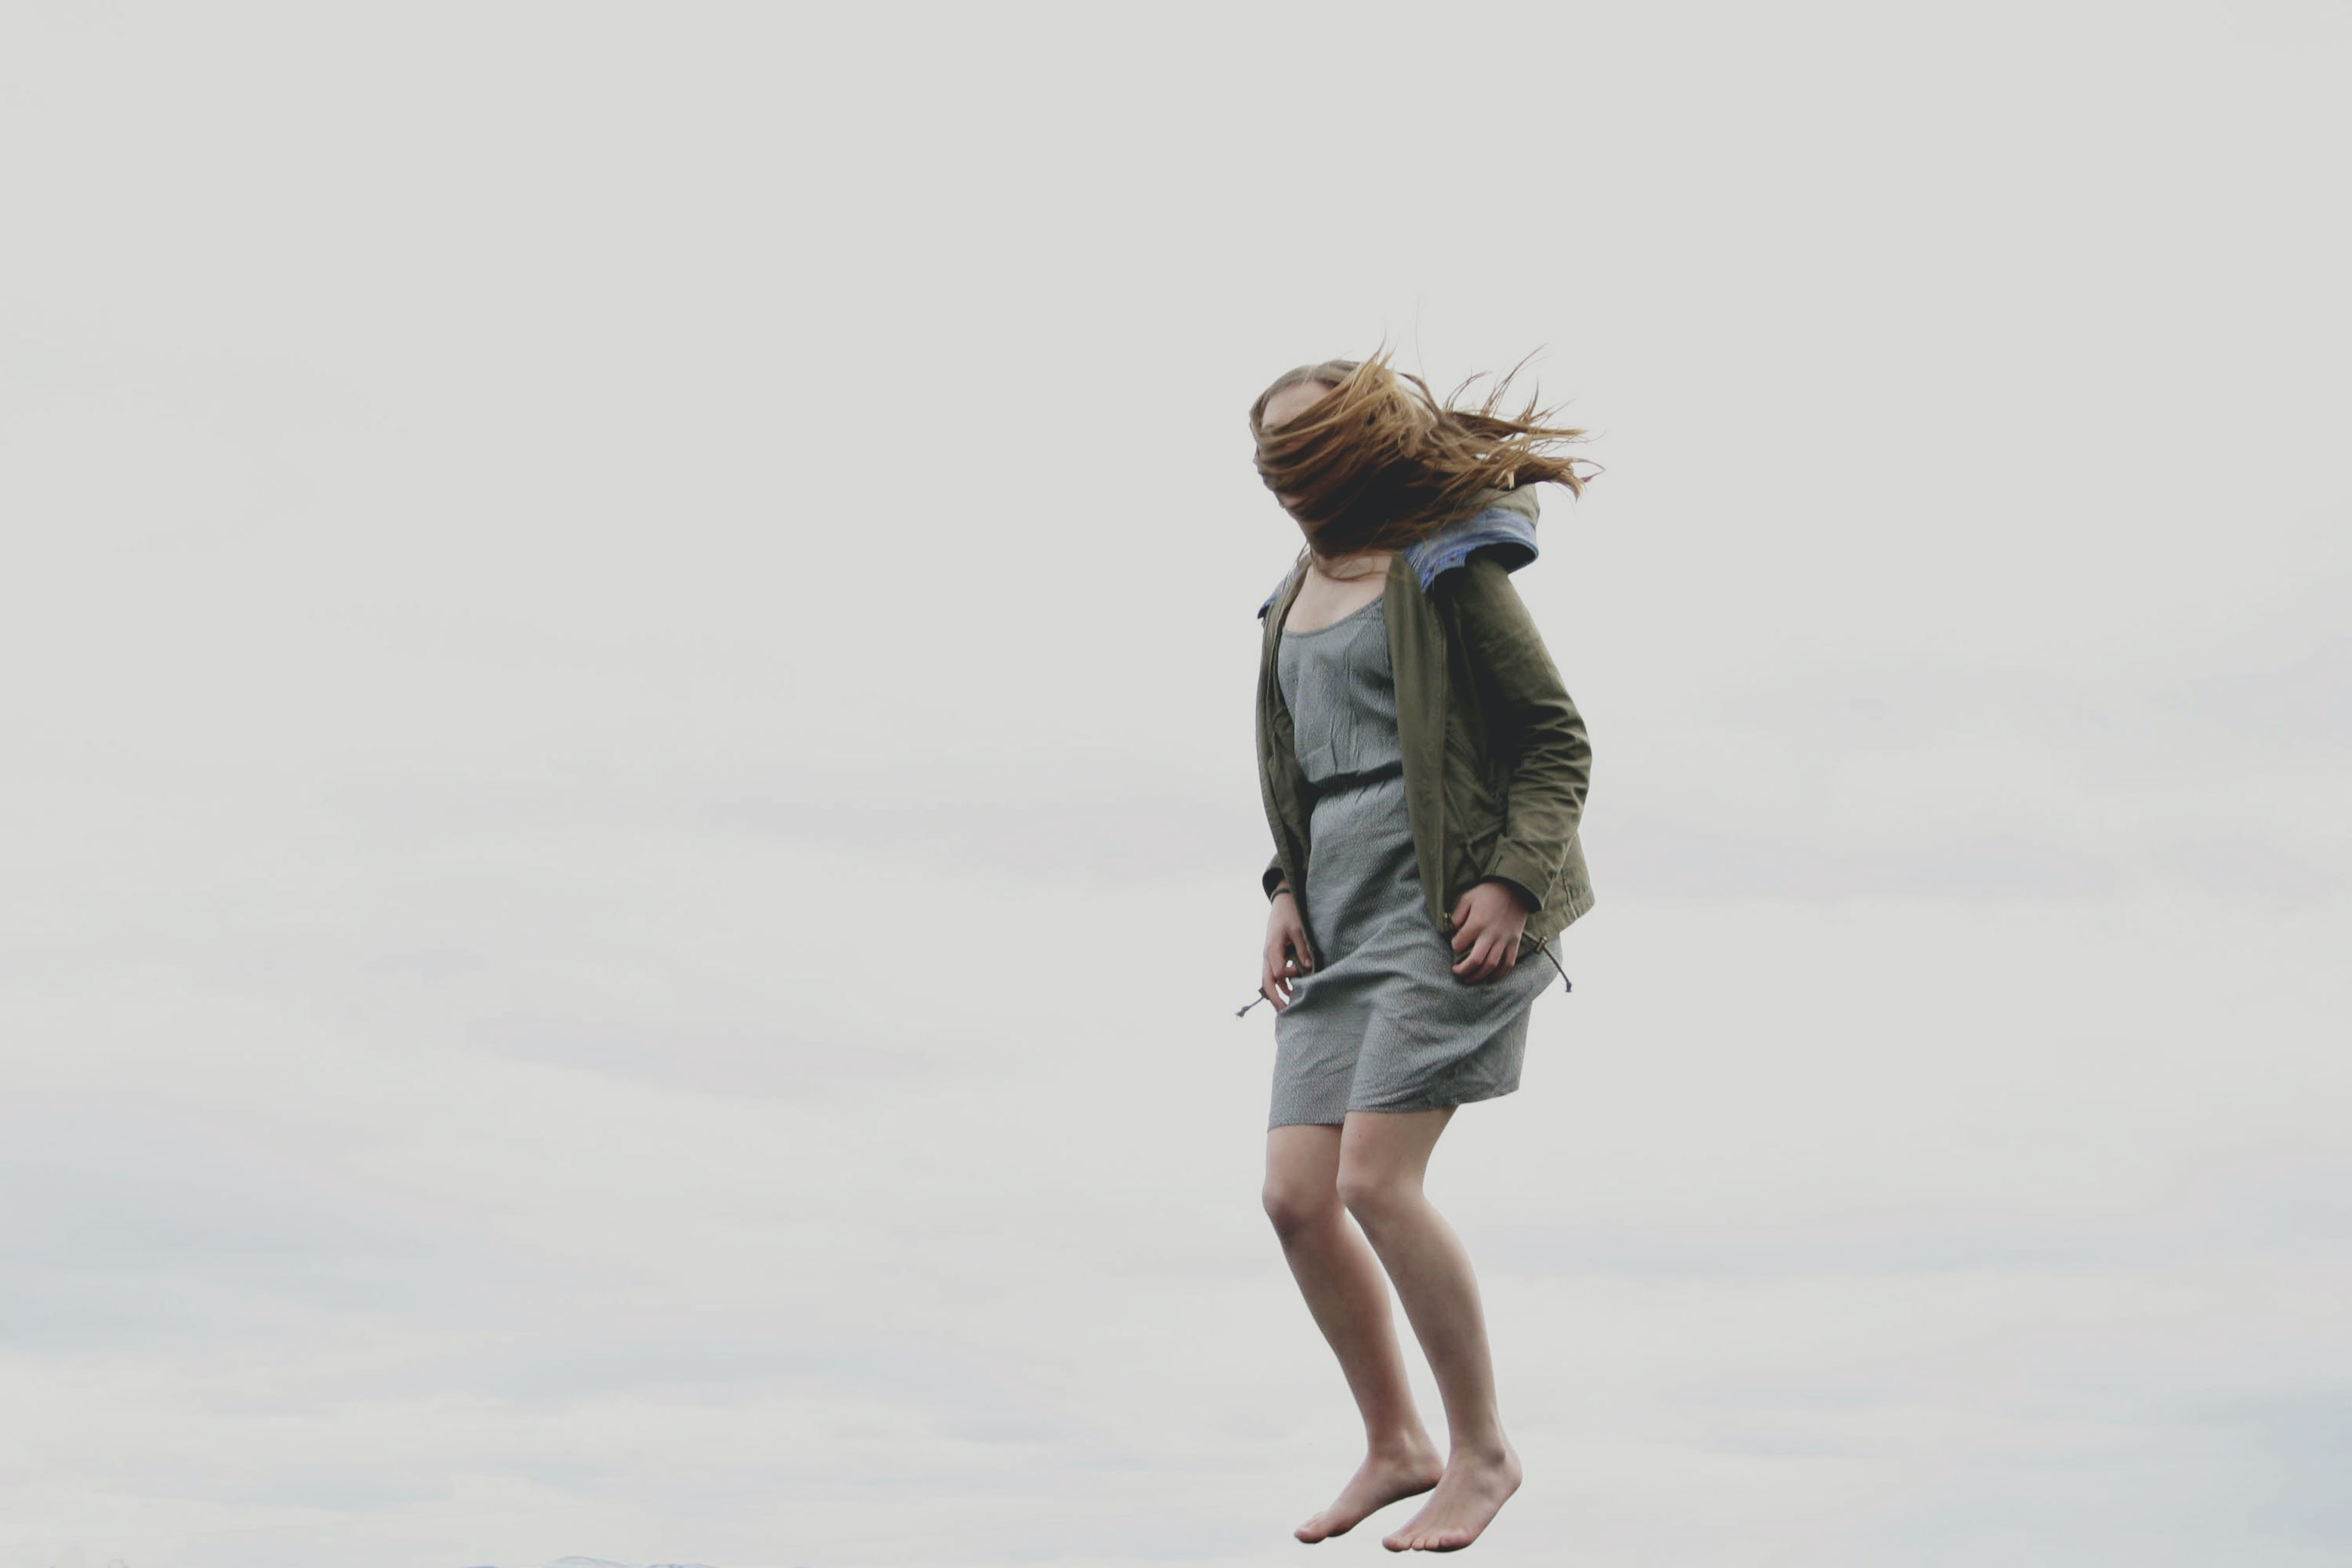 photography of woman covered with her hair while jumping